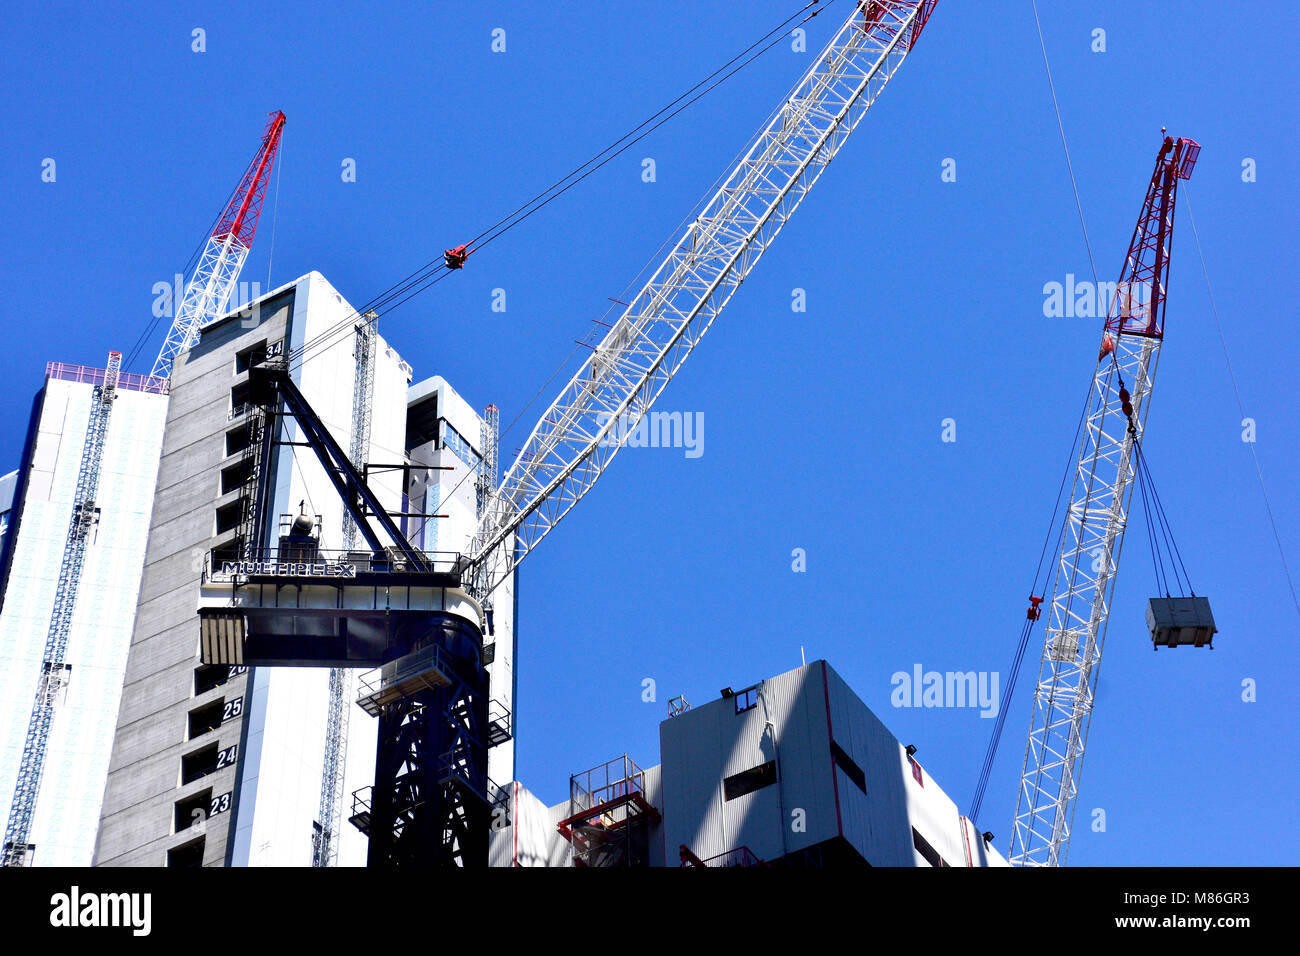 WORKING ON NEW HIGH RISE BUILDING IN BRISBANE CITY AUSTRALIA - Stock Image